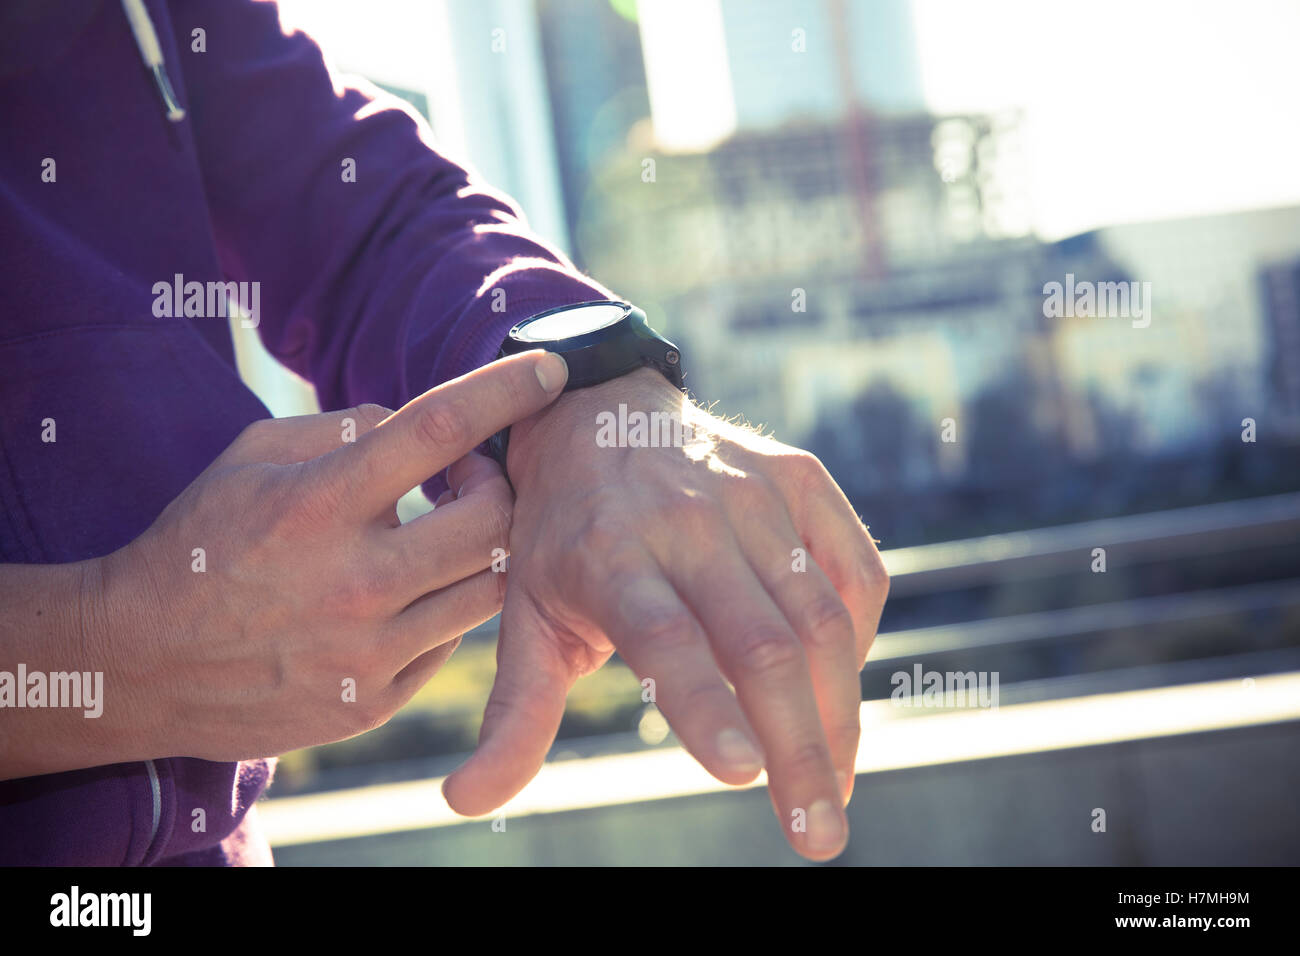 Goldene Uhr Stock Photos Goldene Uhr Stock Images Alamy Schauen Stockfotos And Schauen Bilder Alamy